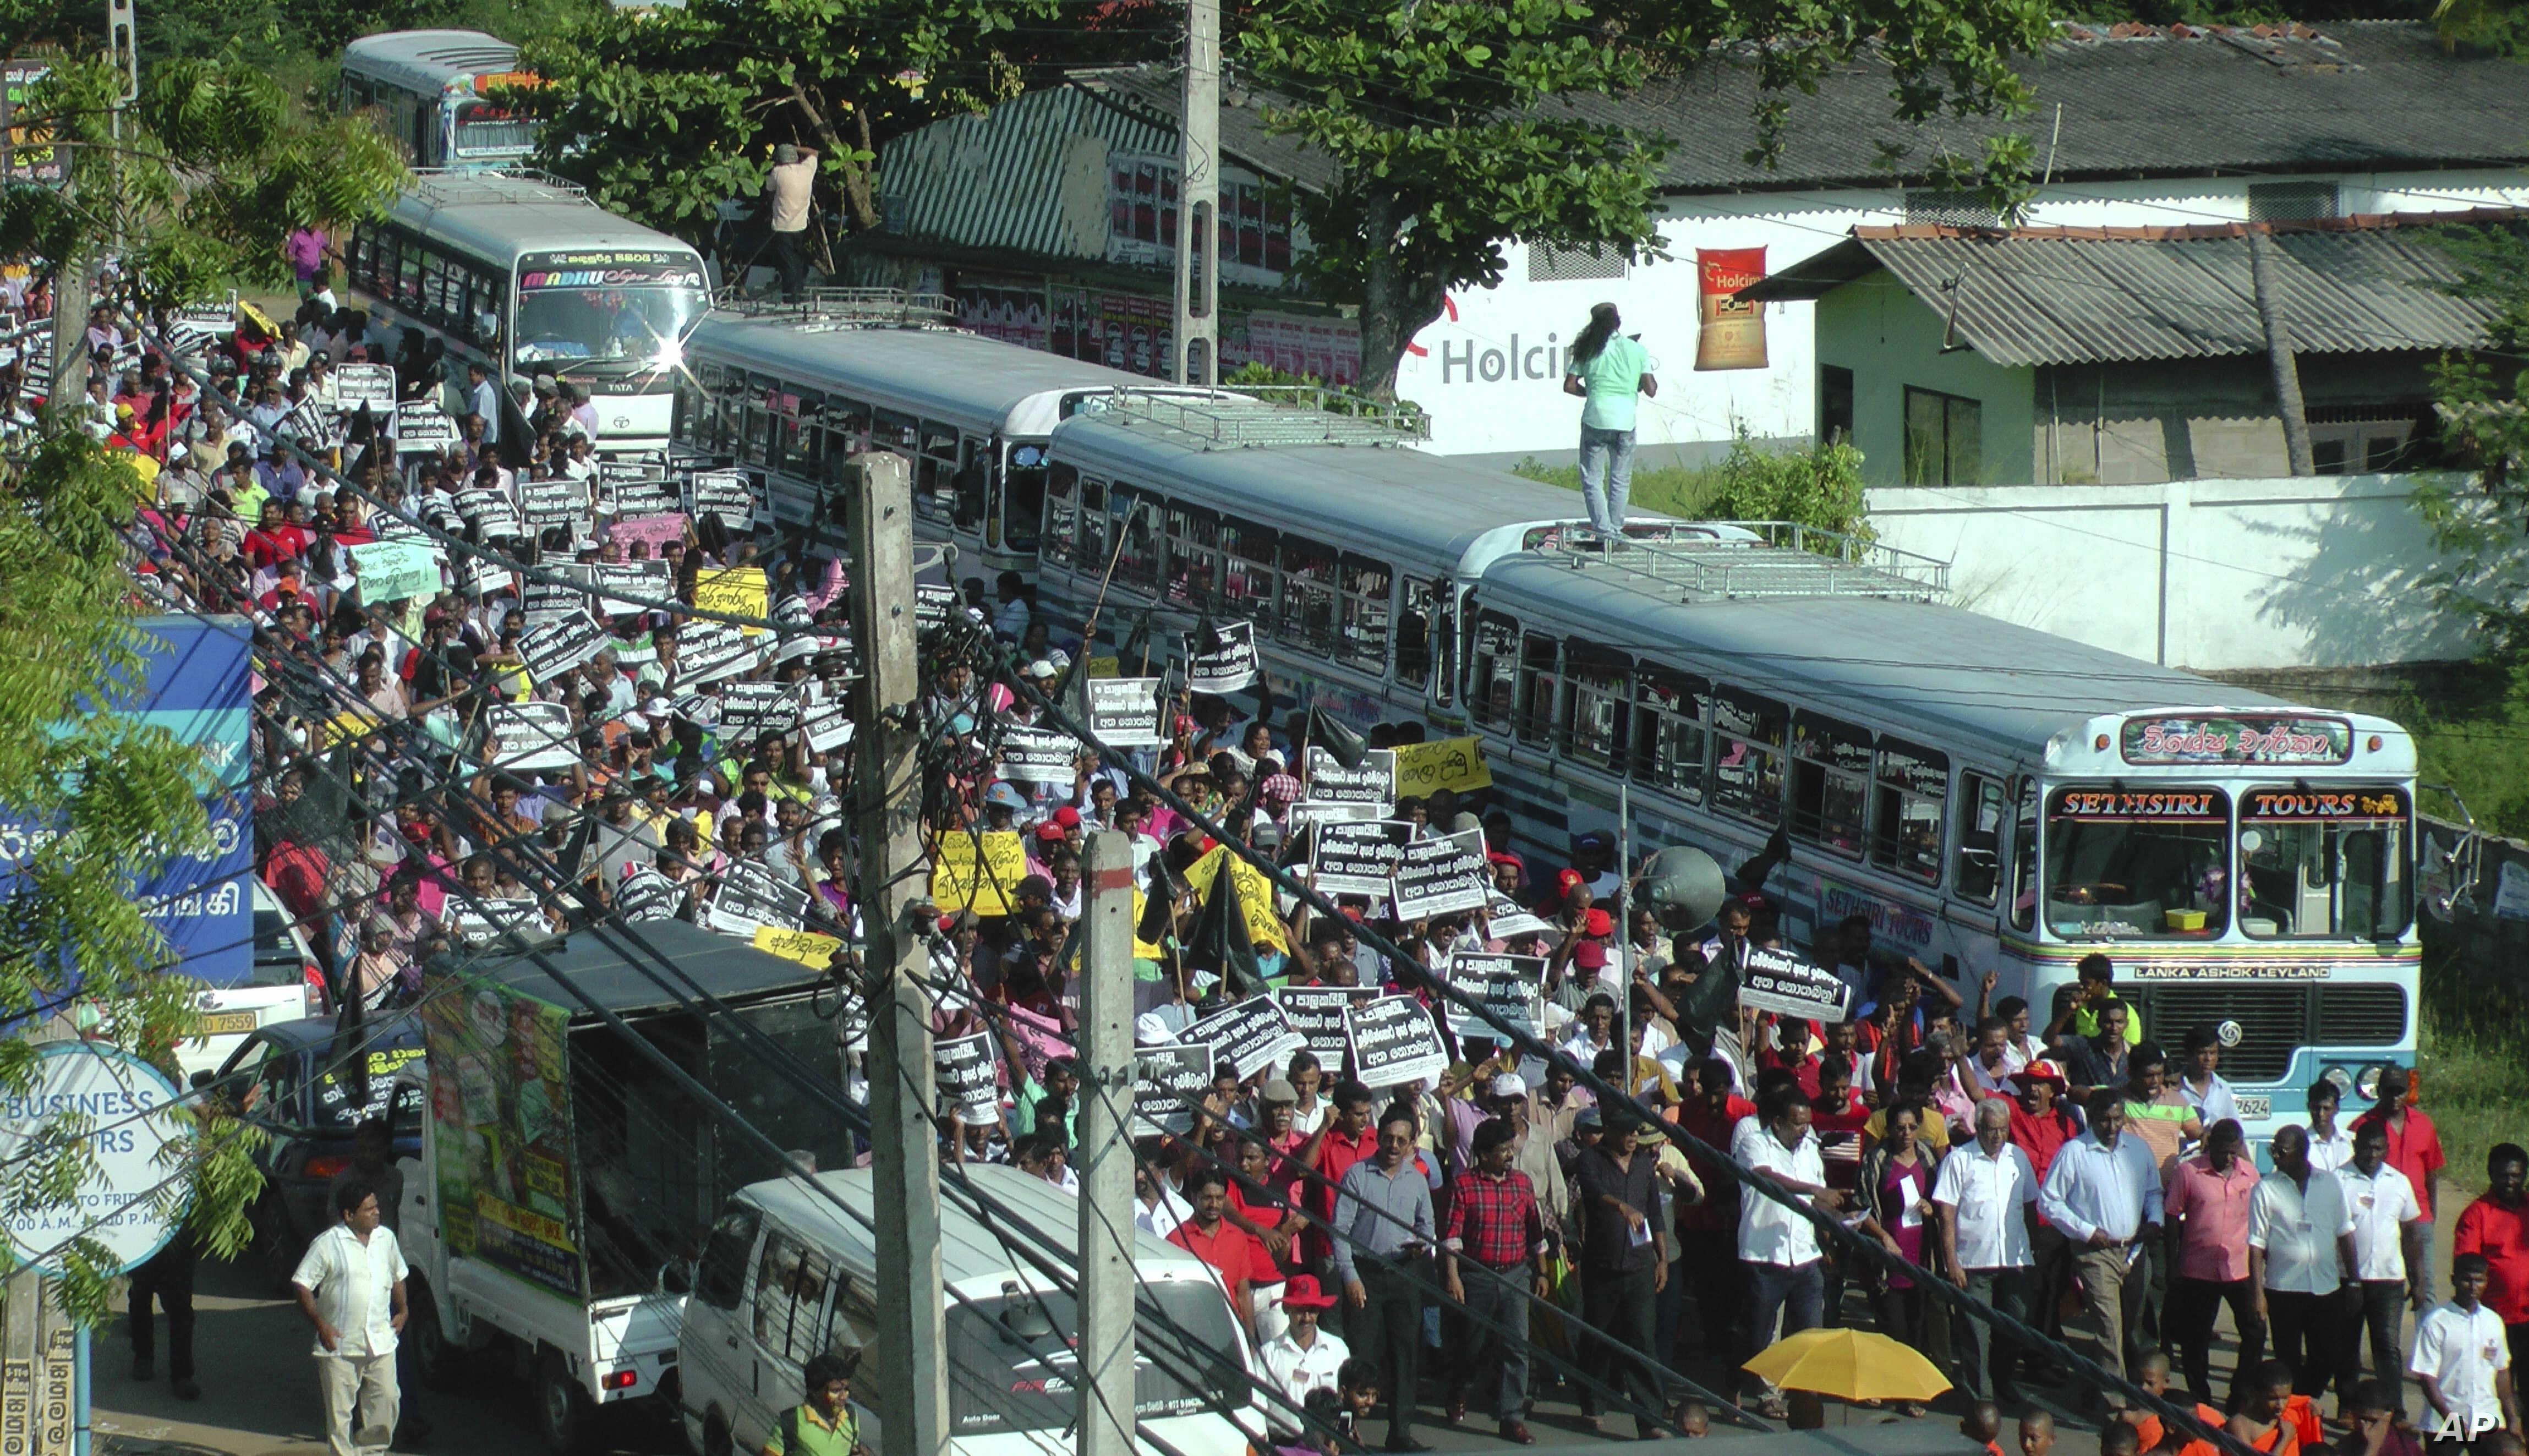 Sri Lankans lead by Marxist party People's Liberation Front march in a protest in Hambantota, about 230 kilometers south east of Colombo, Sri Lanka, Jan. 5, 2017. Hundreds of opposition supporters and farmers Thursday protested the Sri Lankan govern